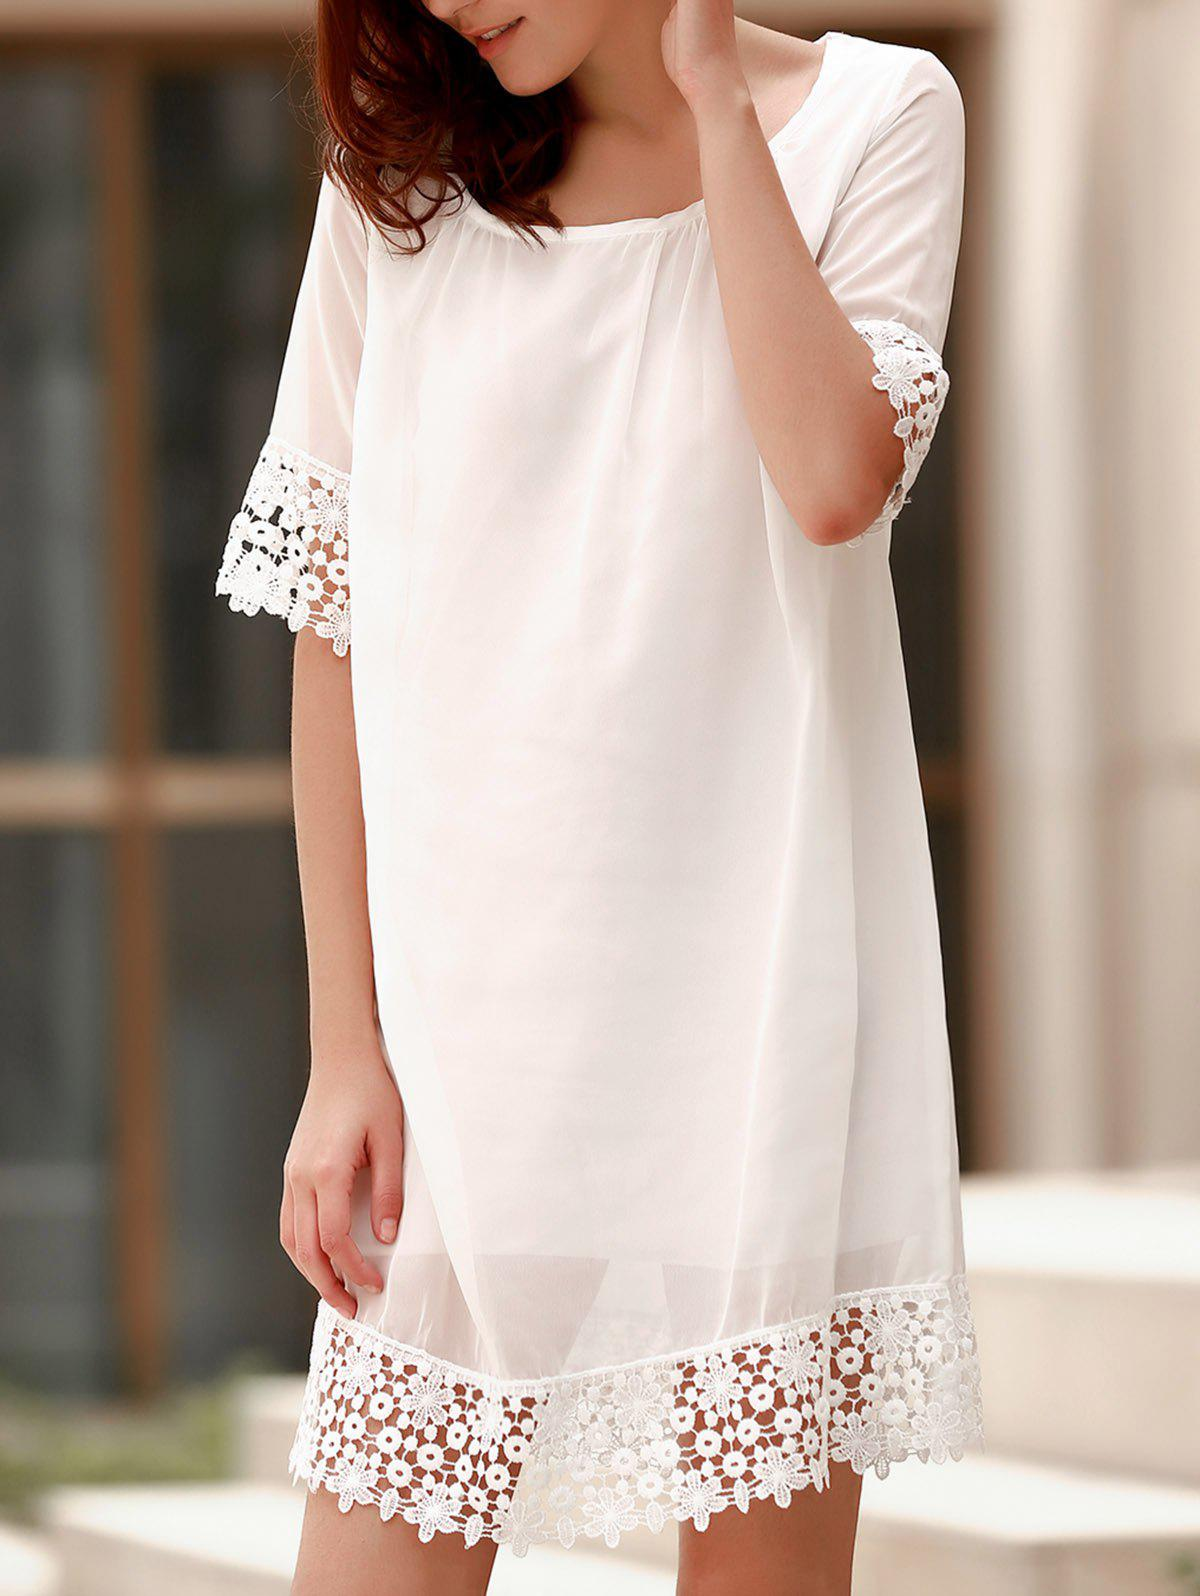 Sweet 3/4 Sleeve Lace Spliced Pleated White T-Shirt Dress For Women - WHITE M